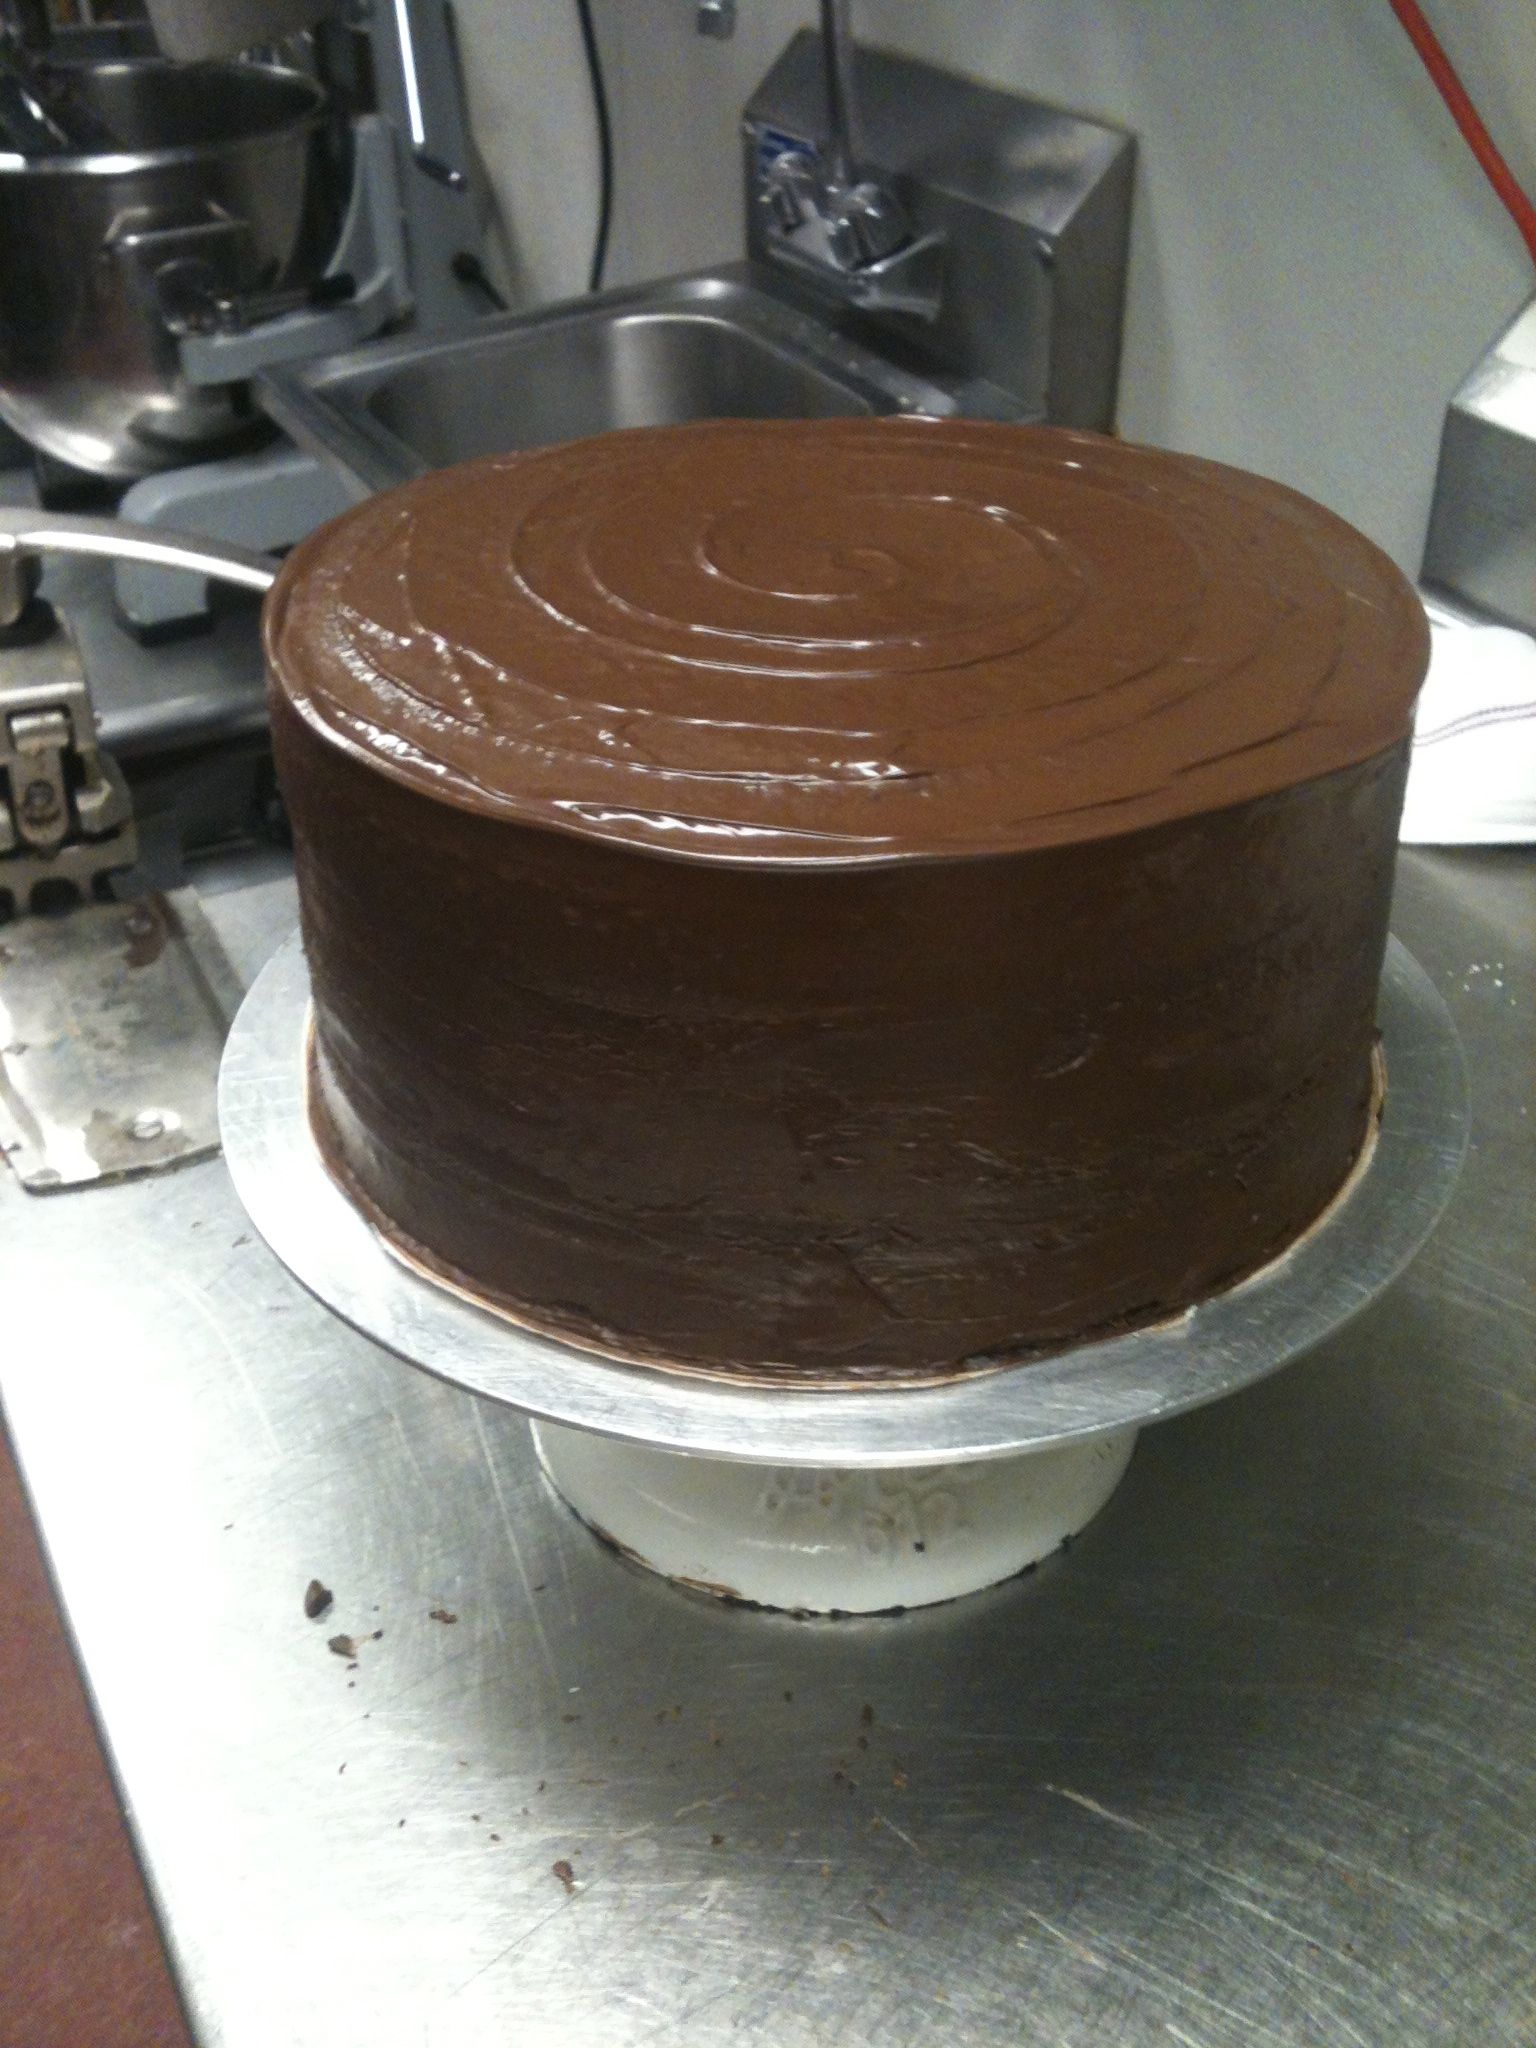 Chocolate stout cake--made with the great 512 Pecan Porter.